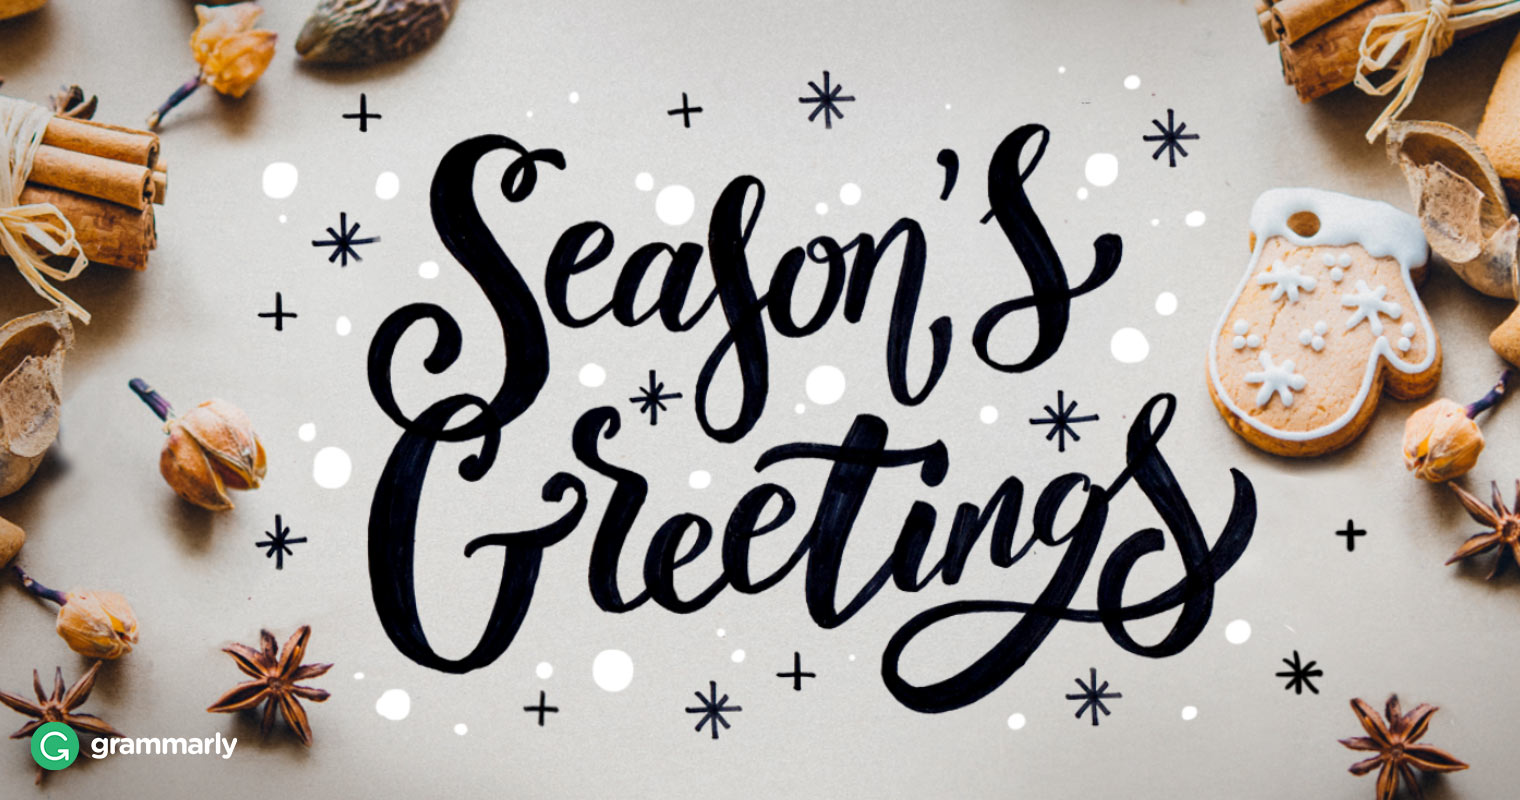 Seasons Greetings Or Seasons Greetings And Confusing Holiday Terms